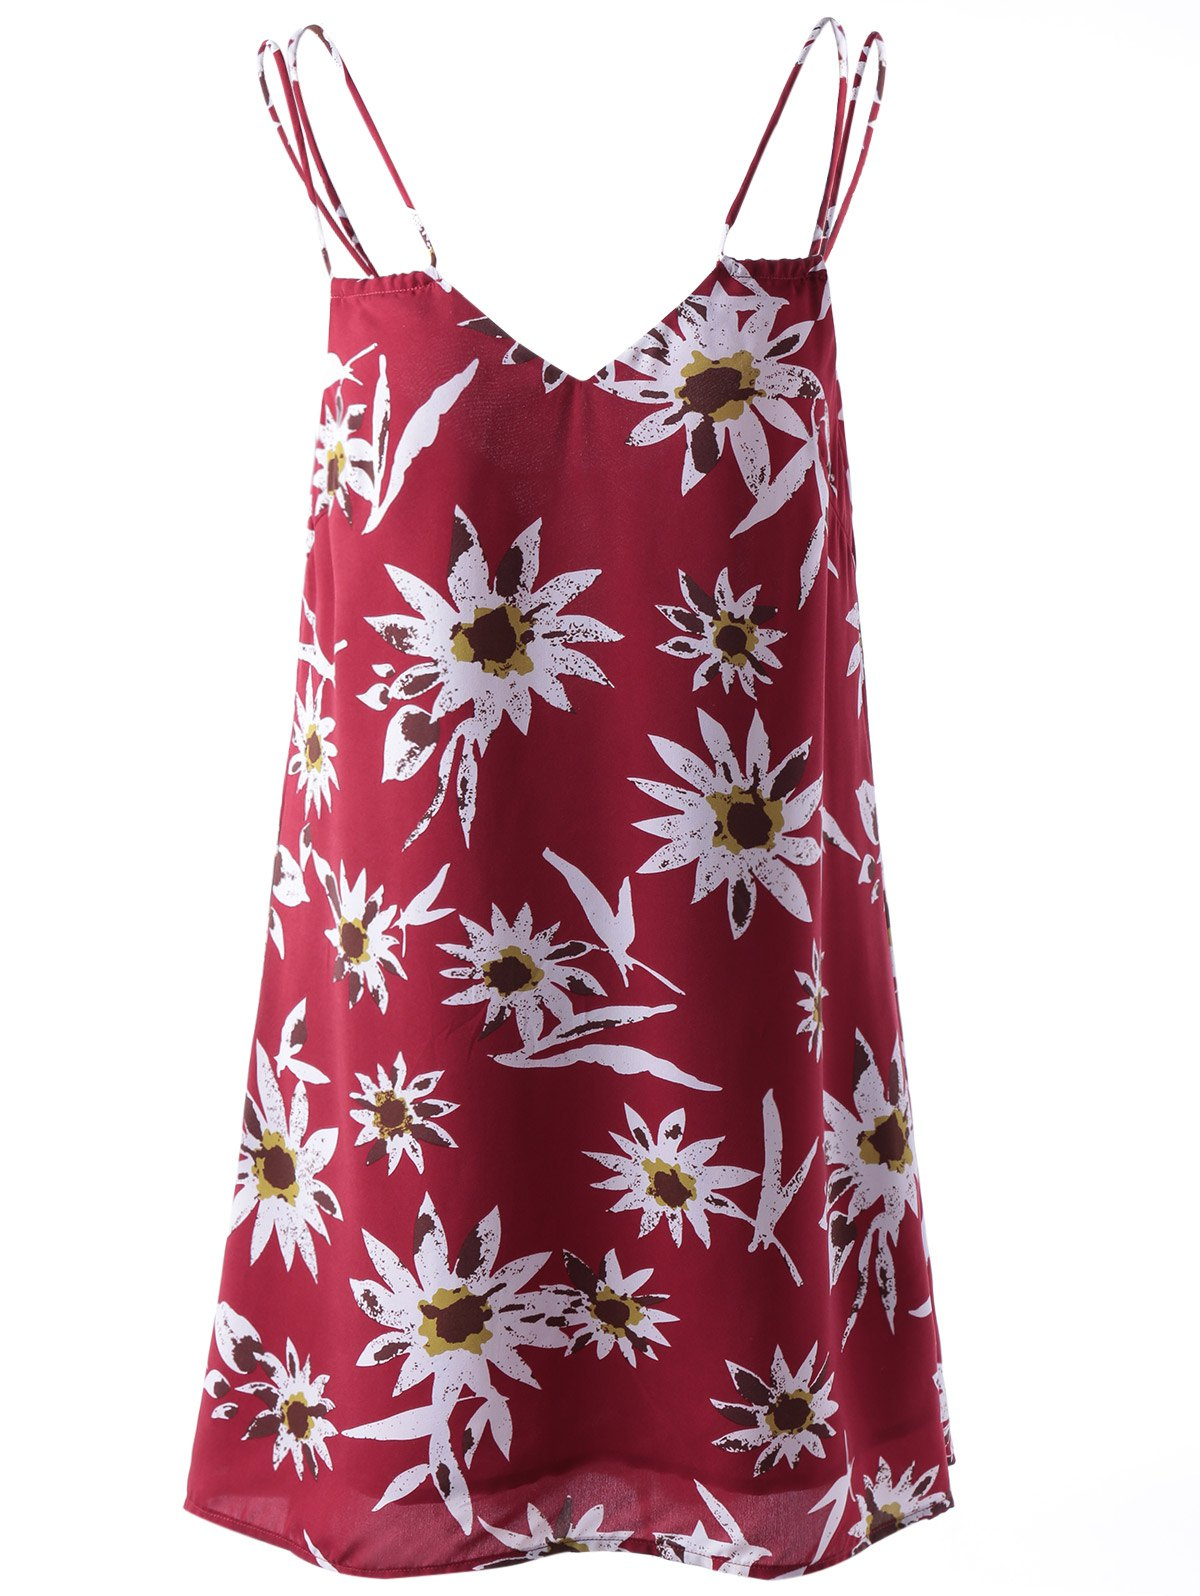 Stylish Printing Spaghetti Straps Dress For Women - COLORMIX L